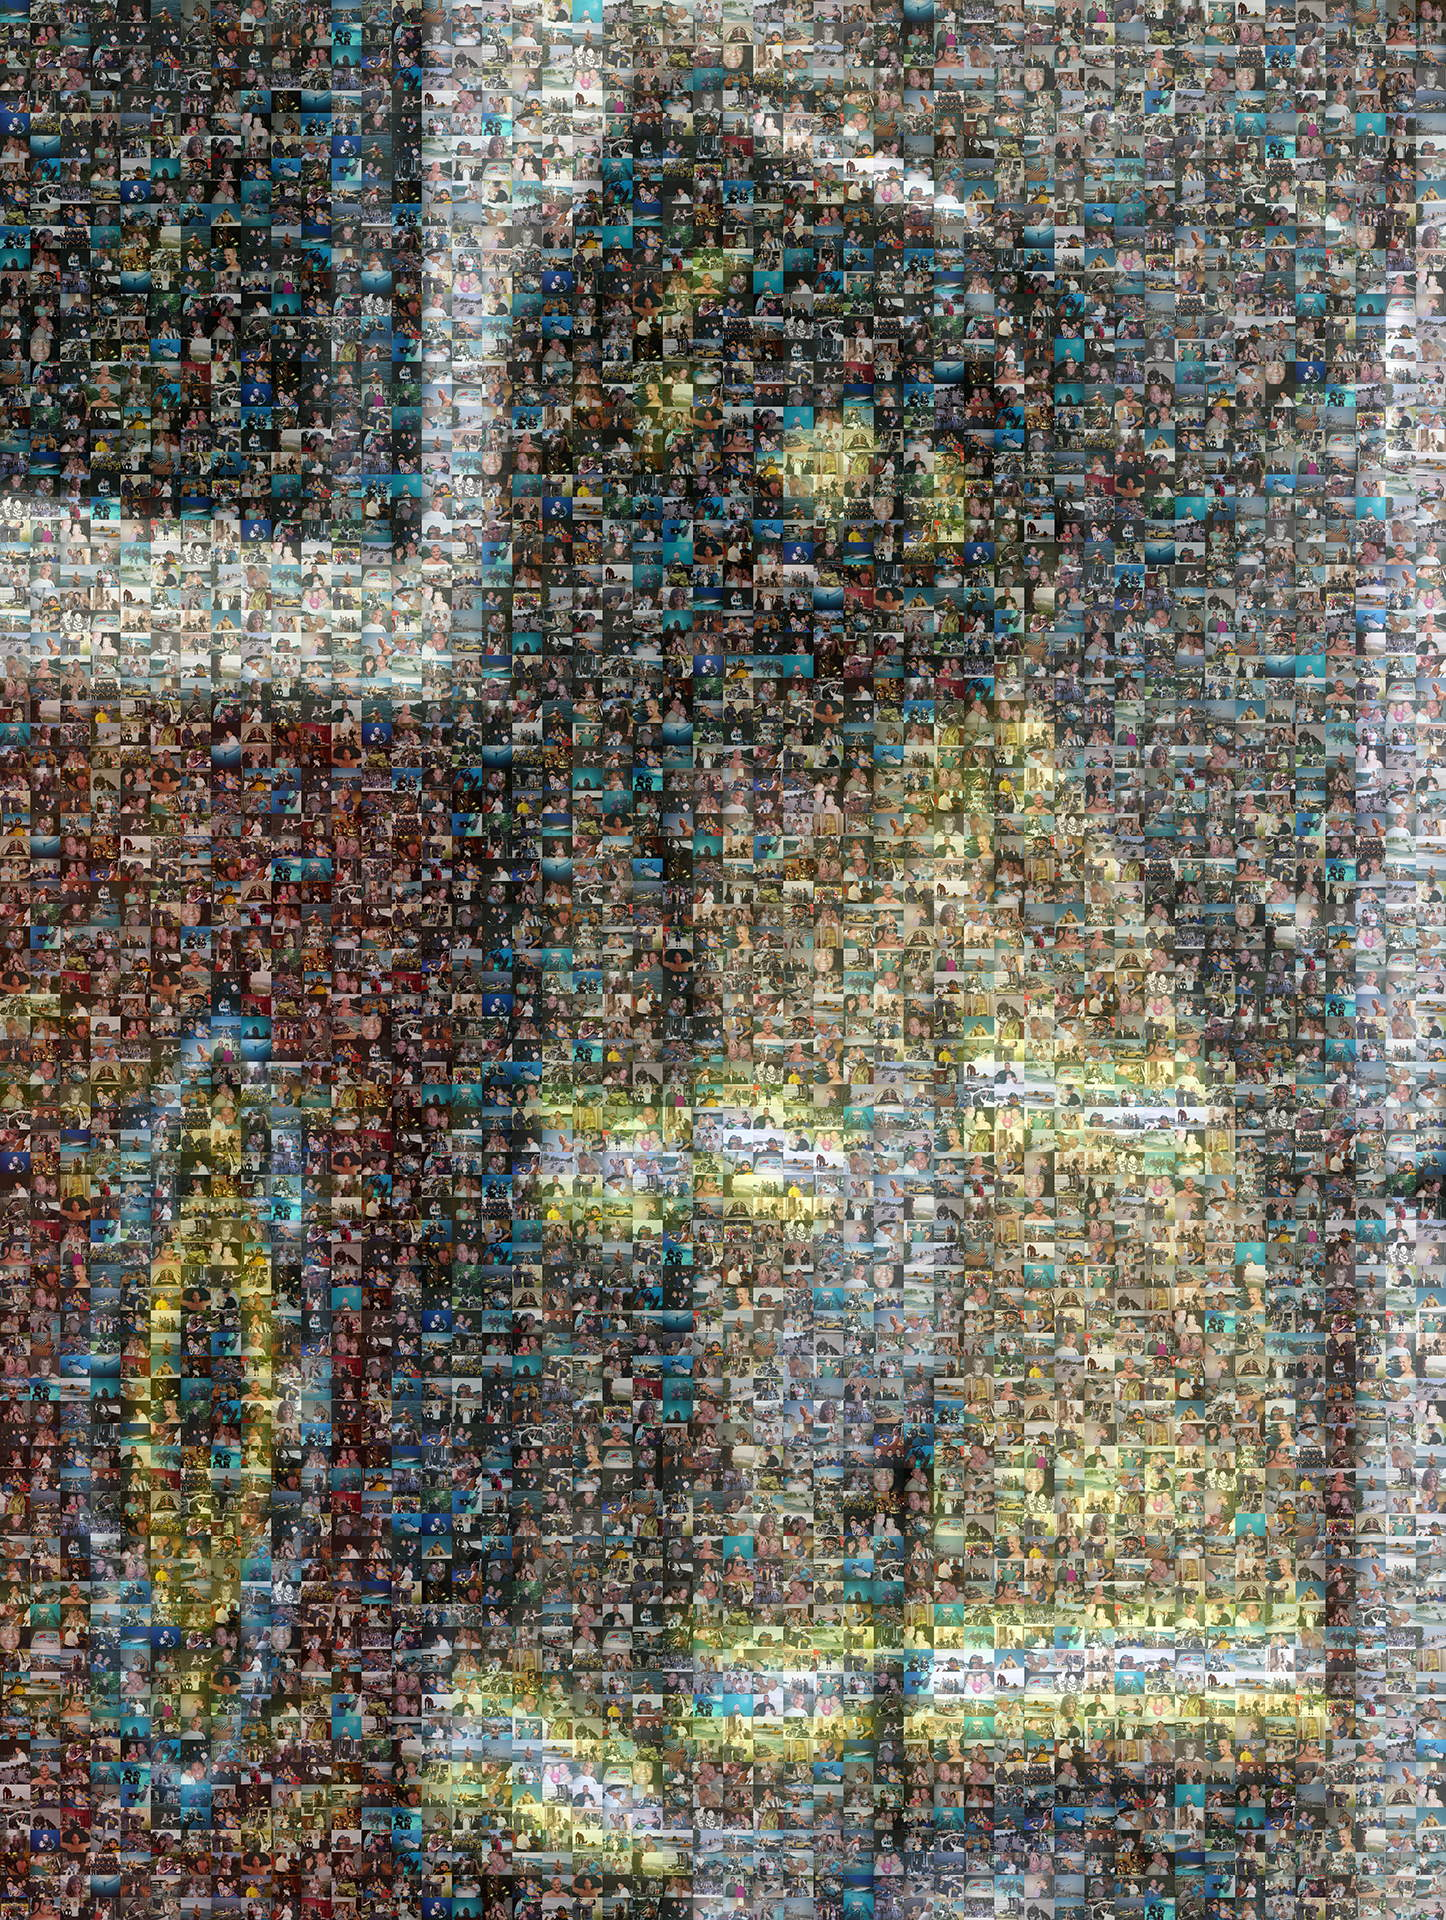 photo mosaic created using 220 customer submitted photos